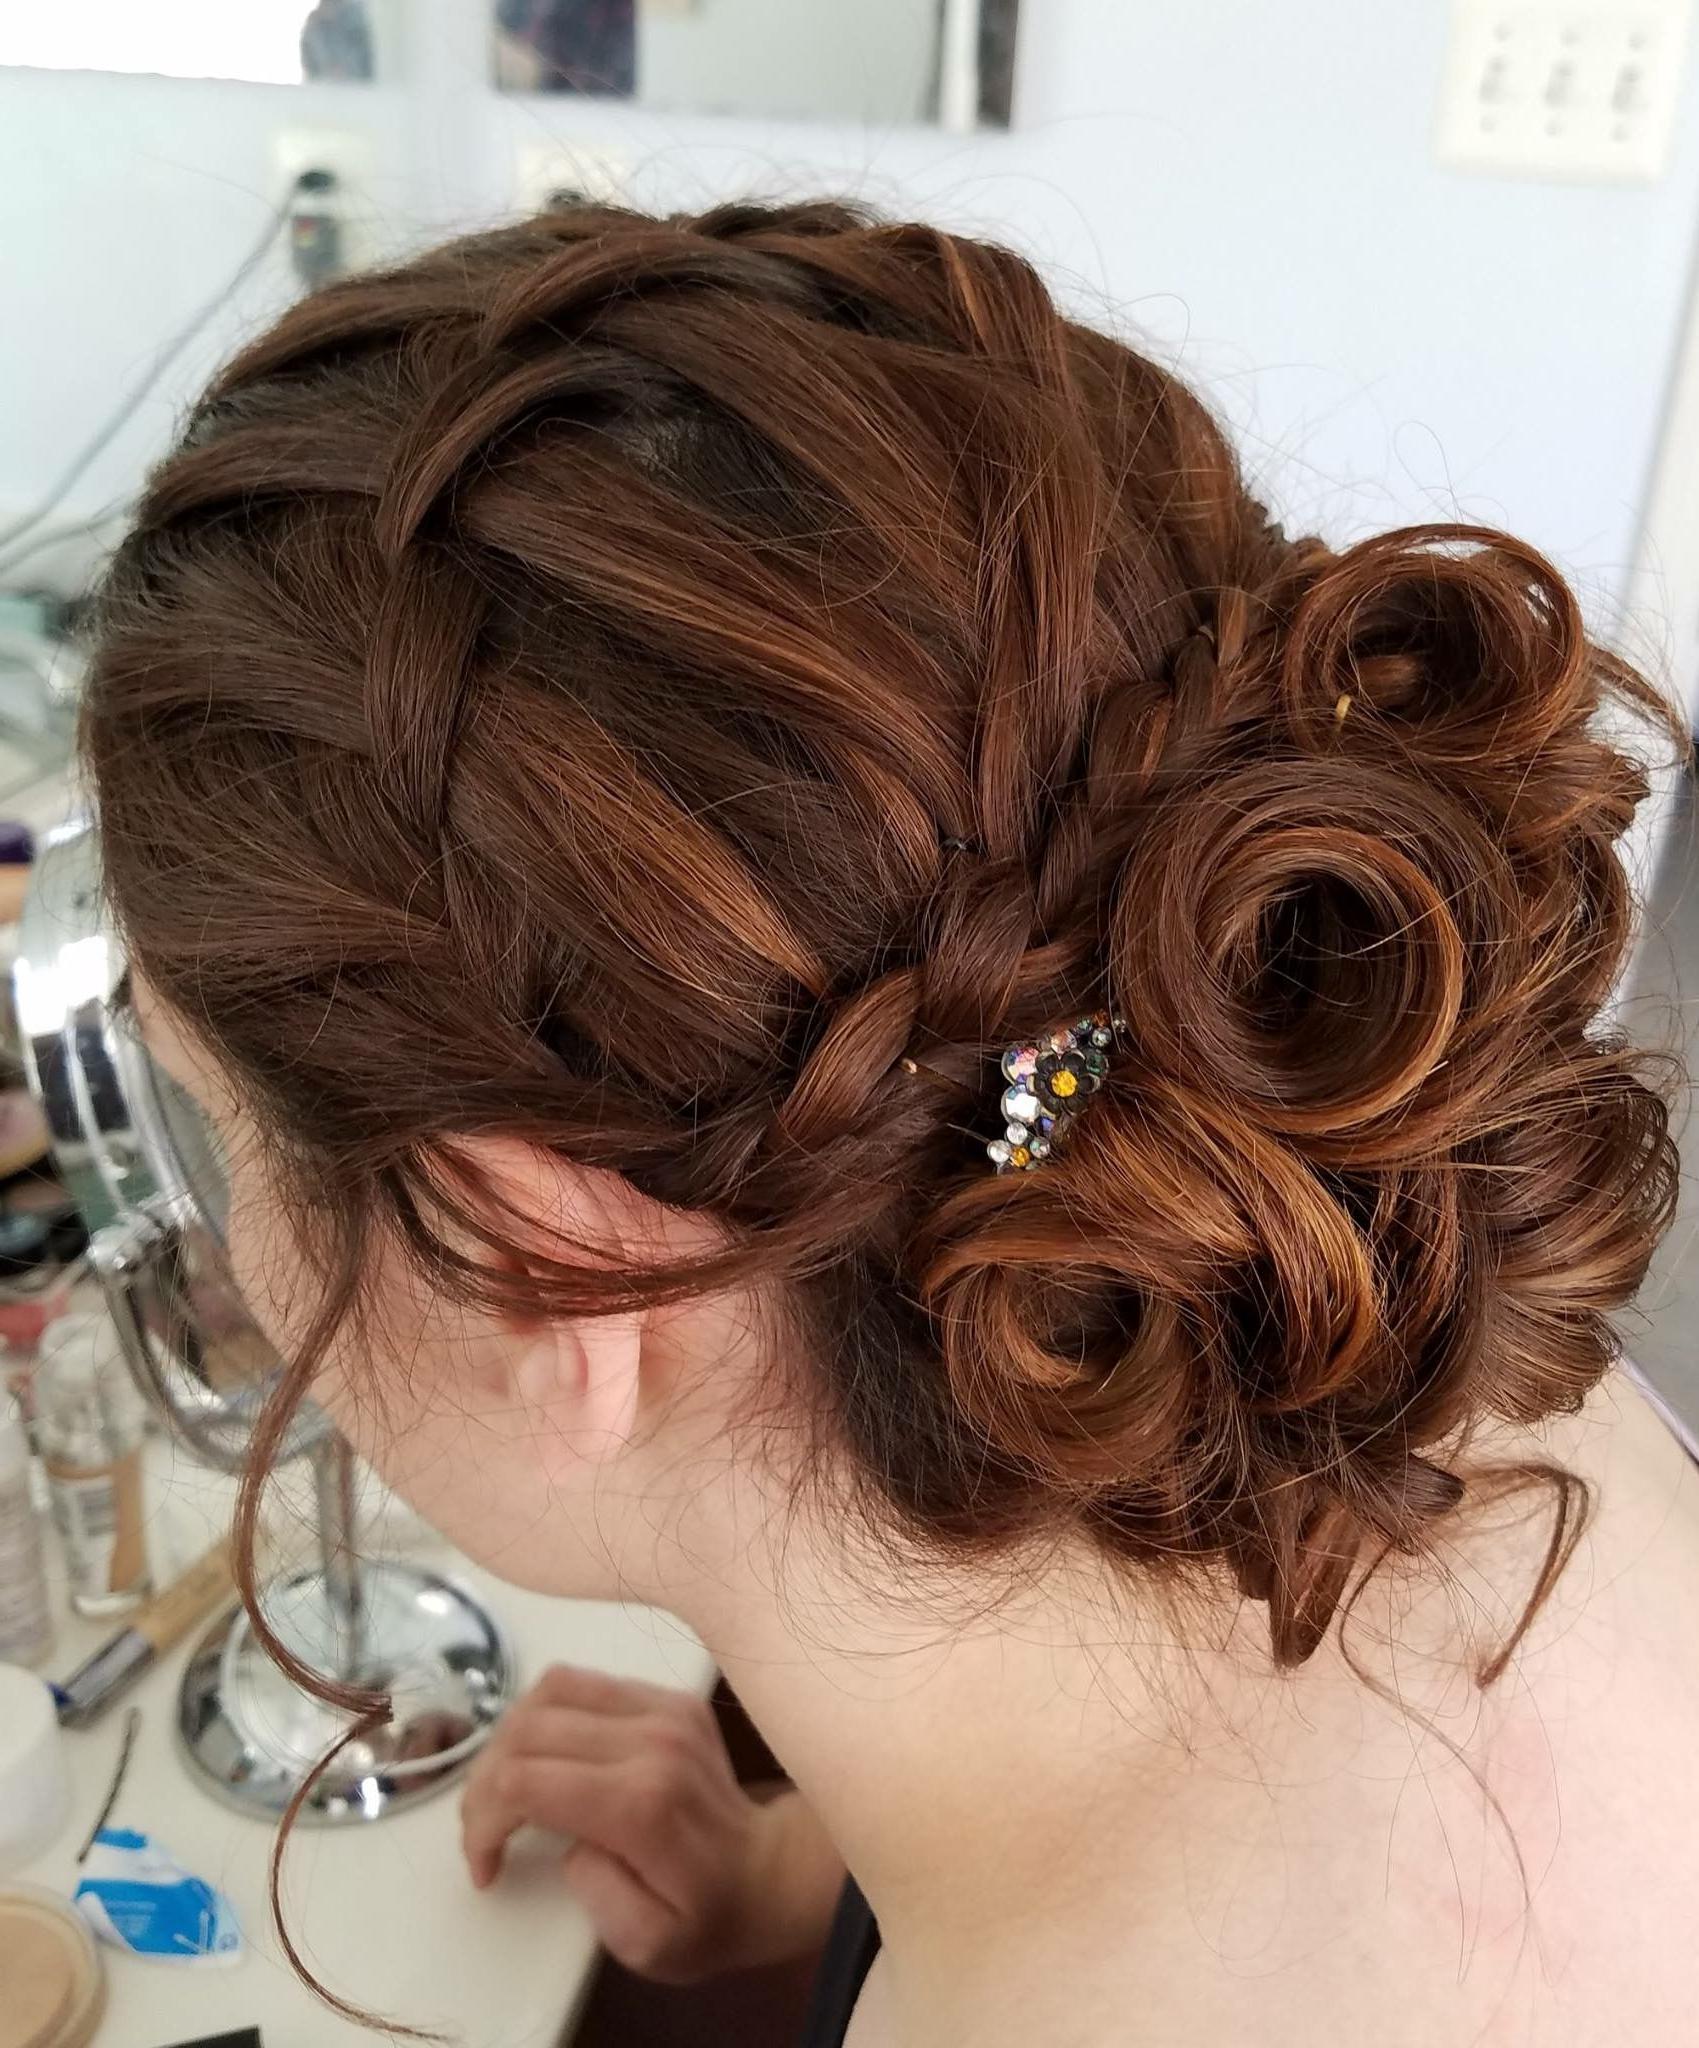 2017 Twisted And Curled Low Prom Updos Within Hairstyles : Hair Twisted Updo Bun Low Wedding Style Plus Hairstyles (Gallery 18 of 20)